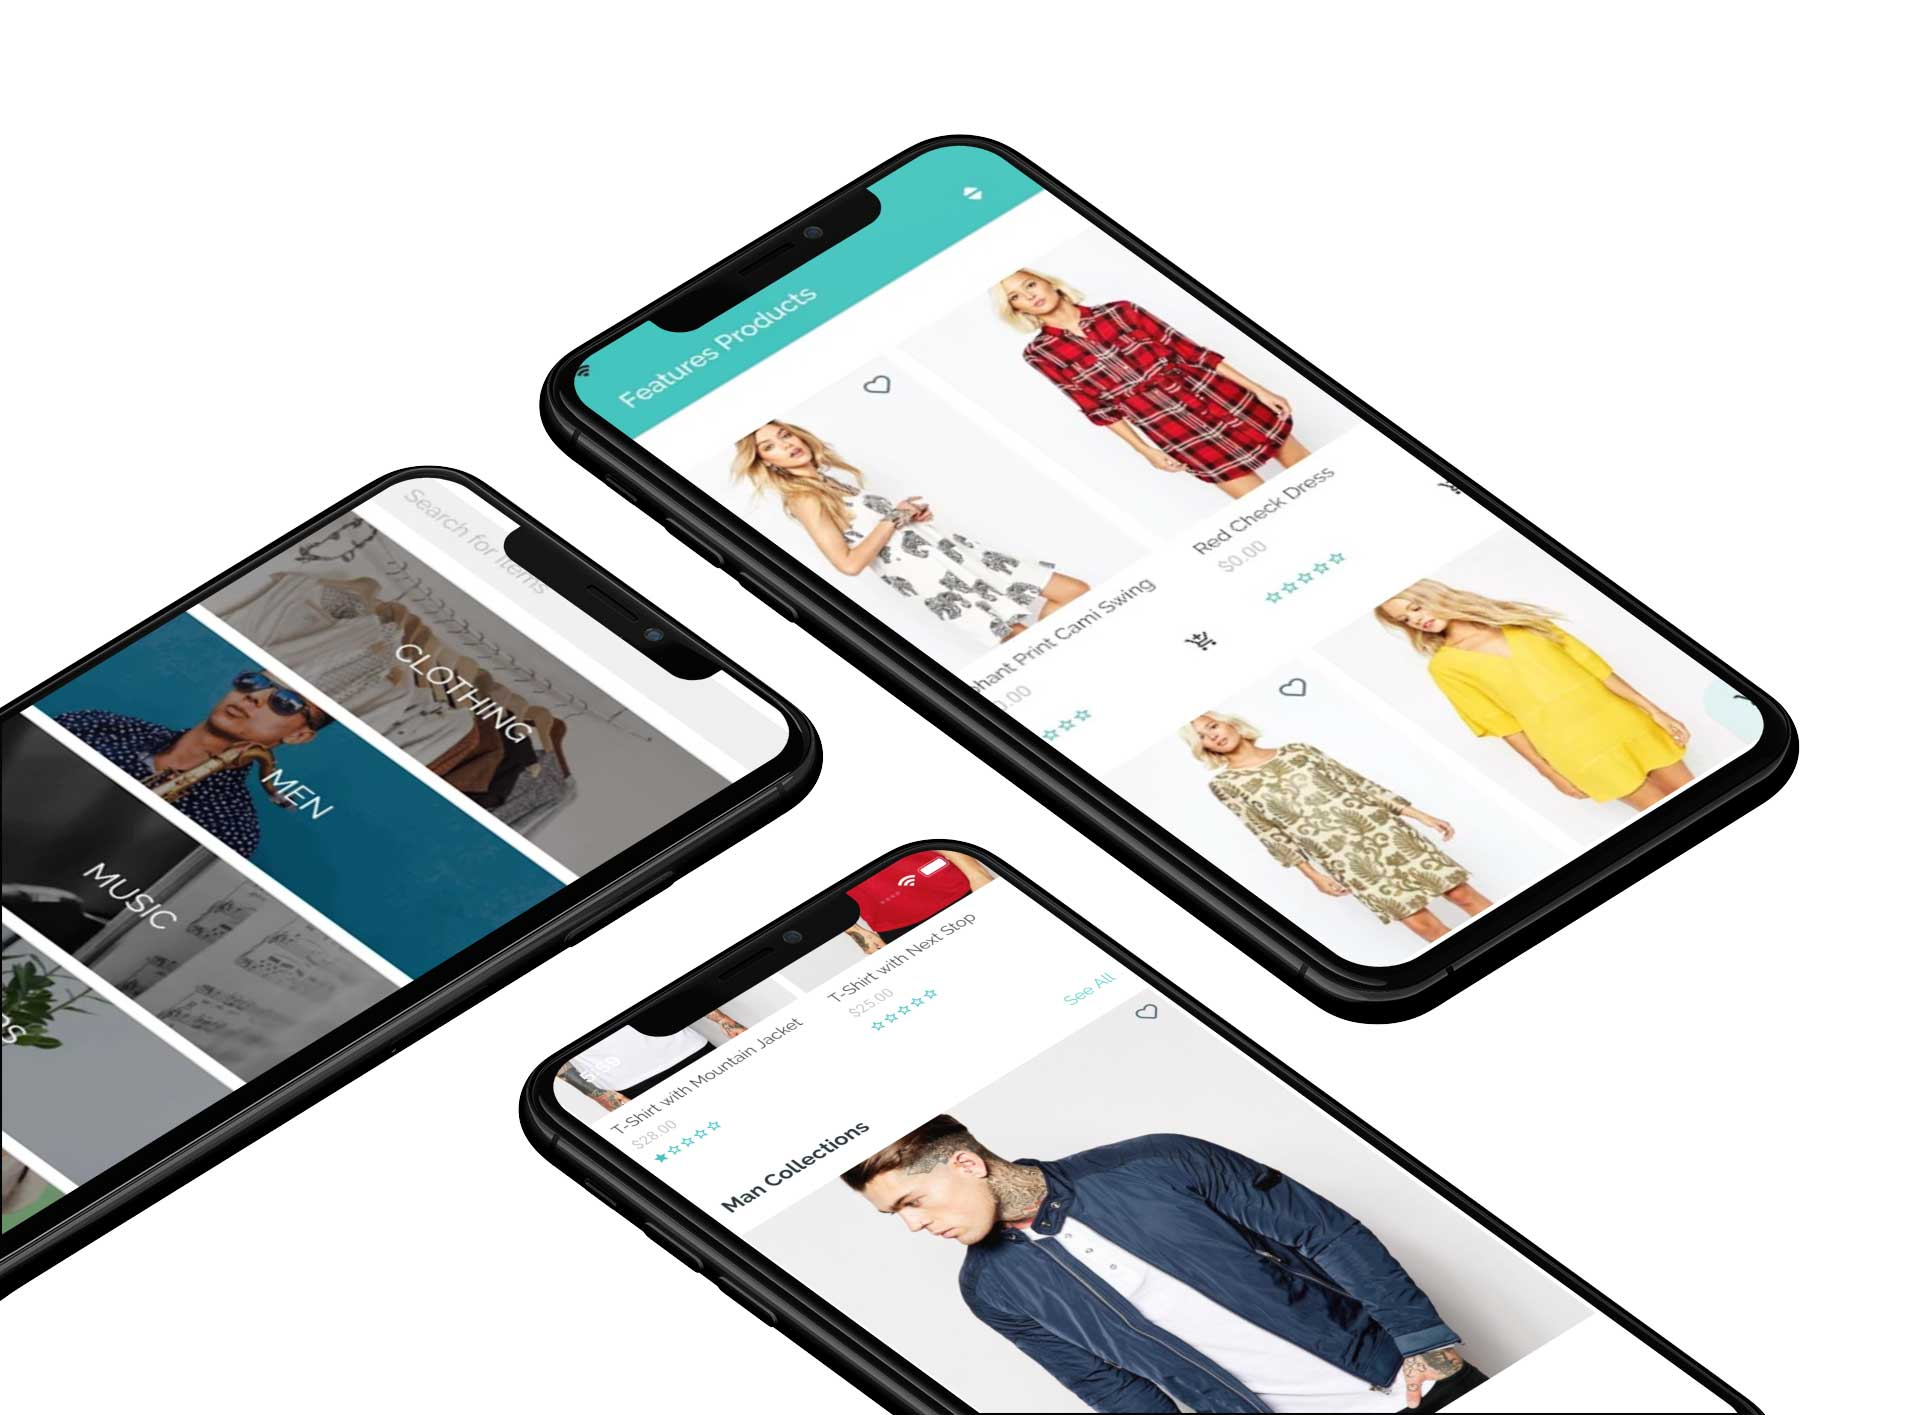 mockup of three iphones xs max lying on a customizable background 253 el MiT Store App